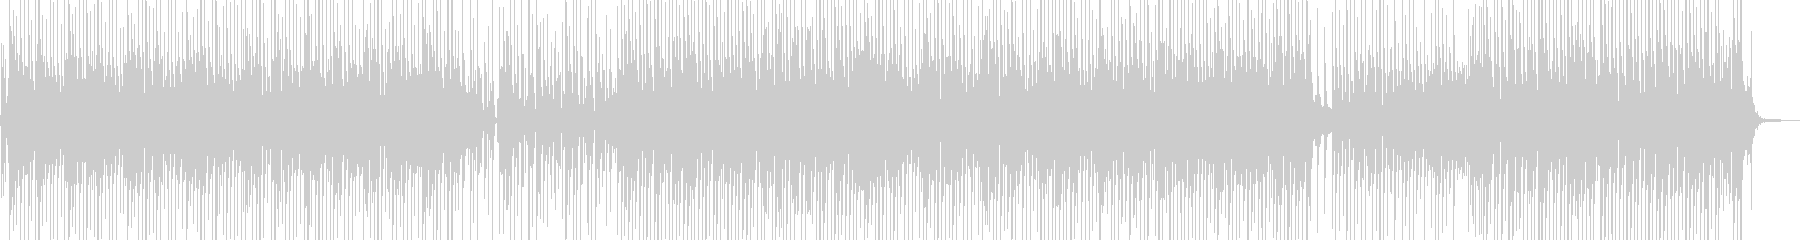 Reggae B inspired by a vacation atmosphere's unreproduced waveform